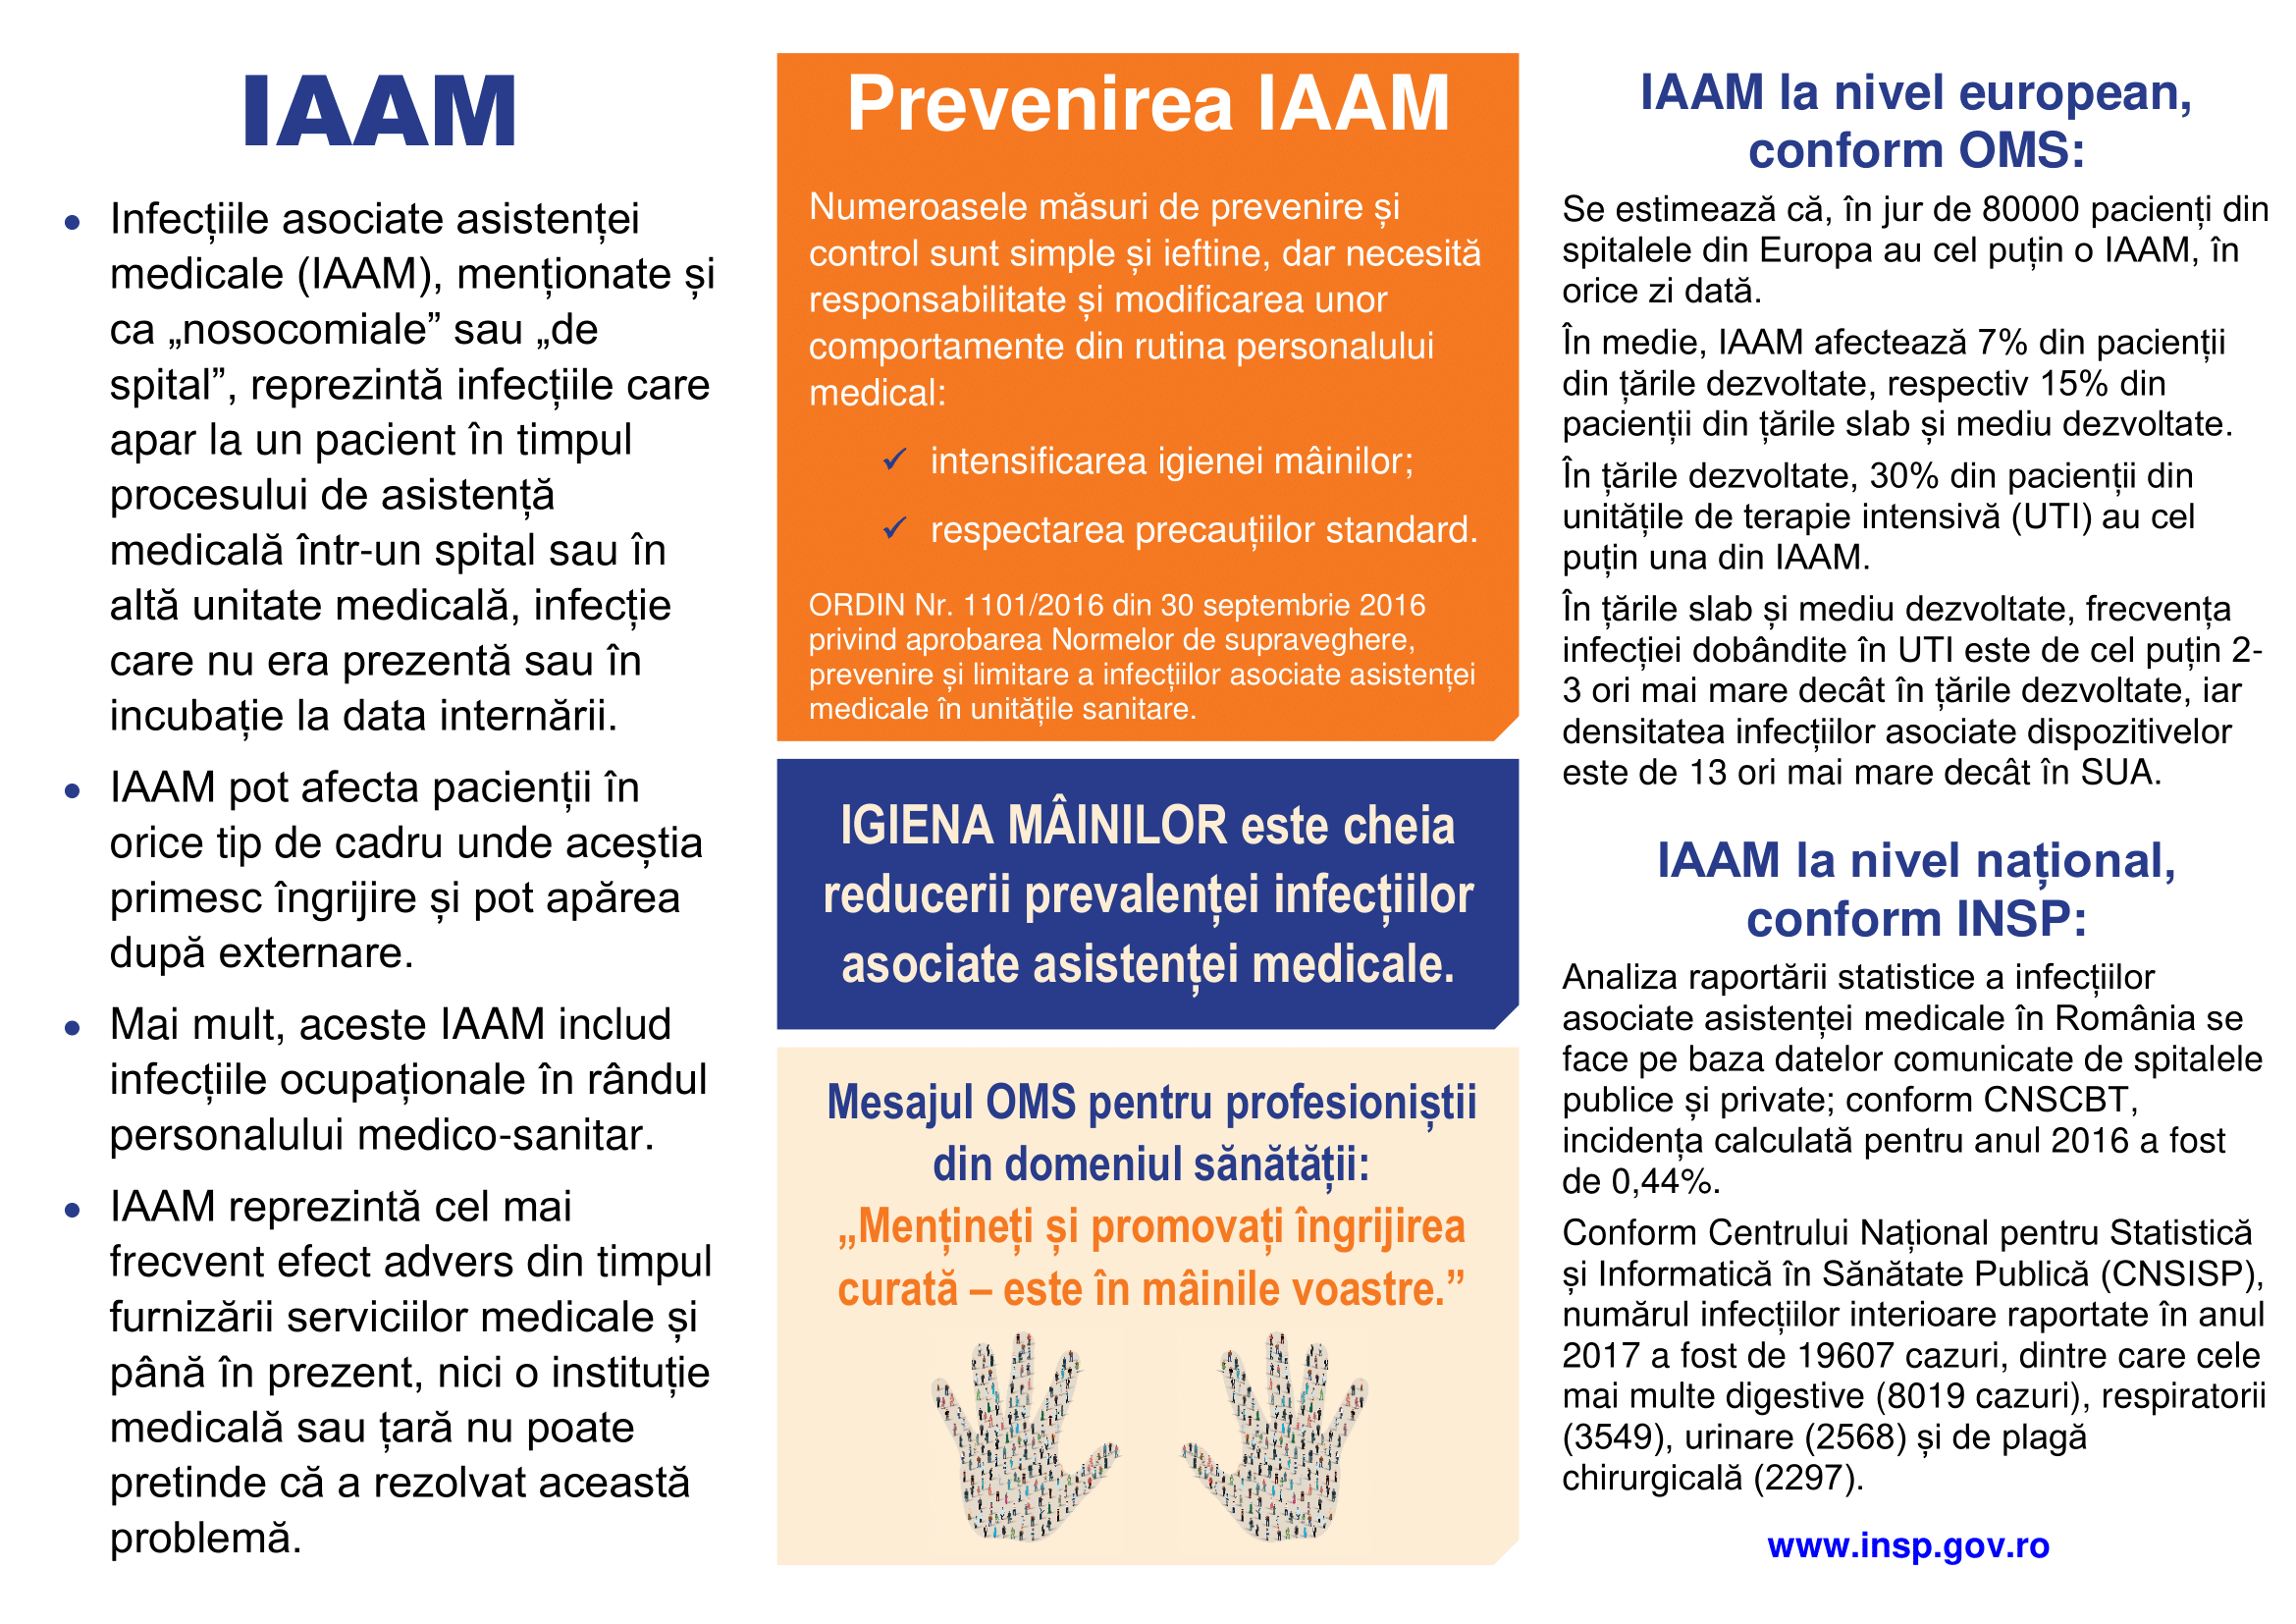 https://www.medstar2000.ro/wp-content/uploads/2019/07/igiena-mainilor-in-spitale.png